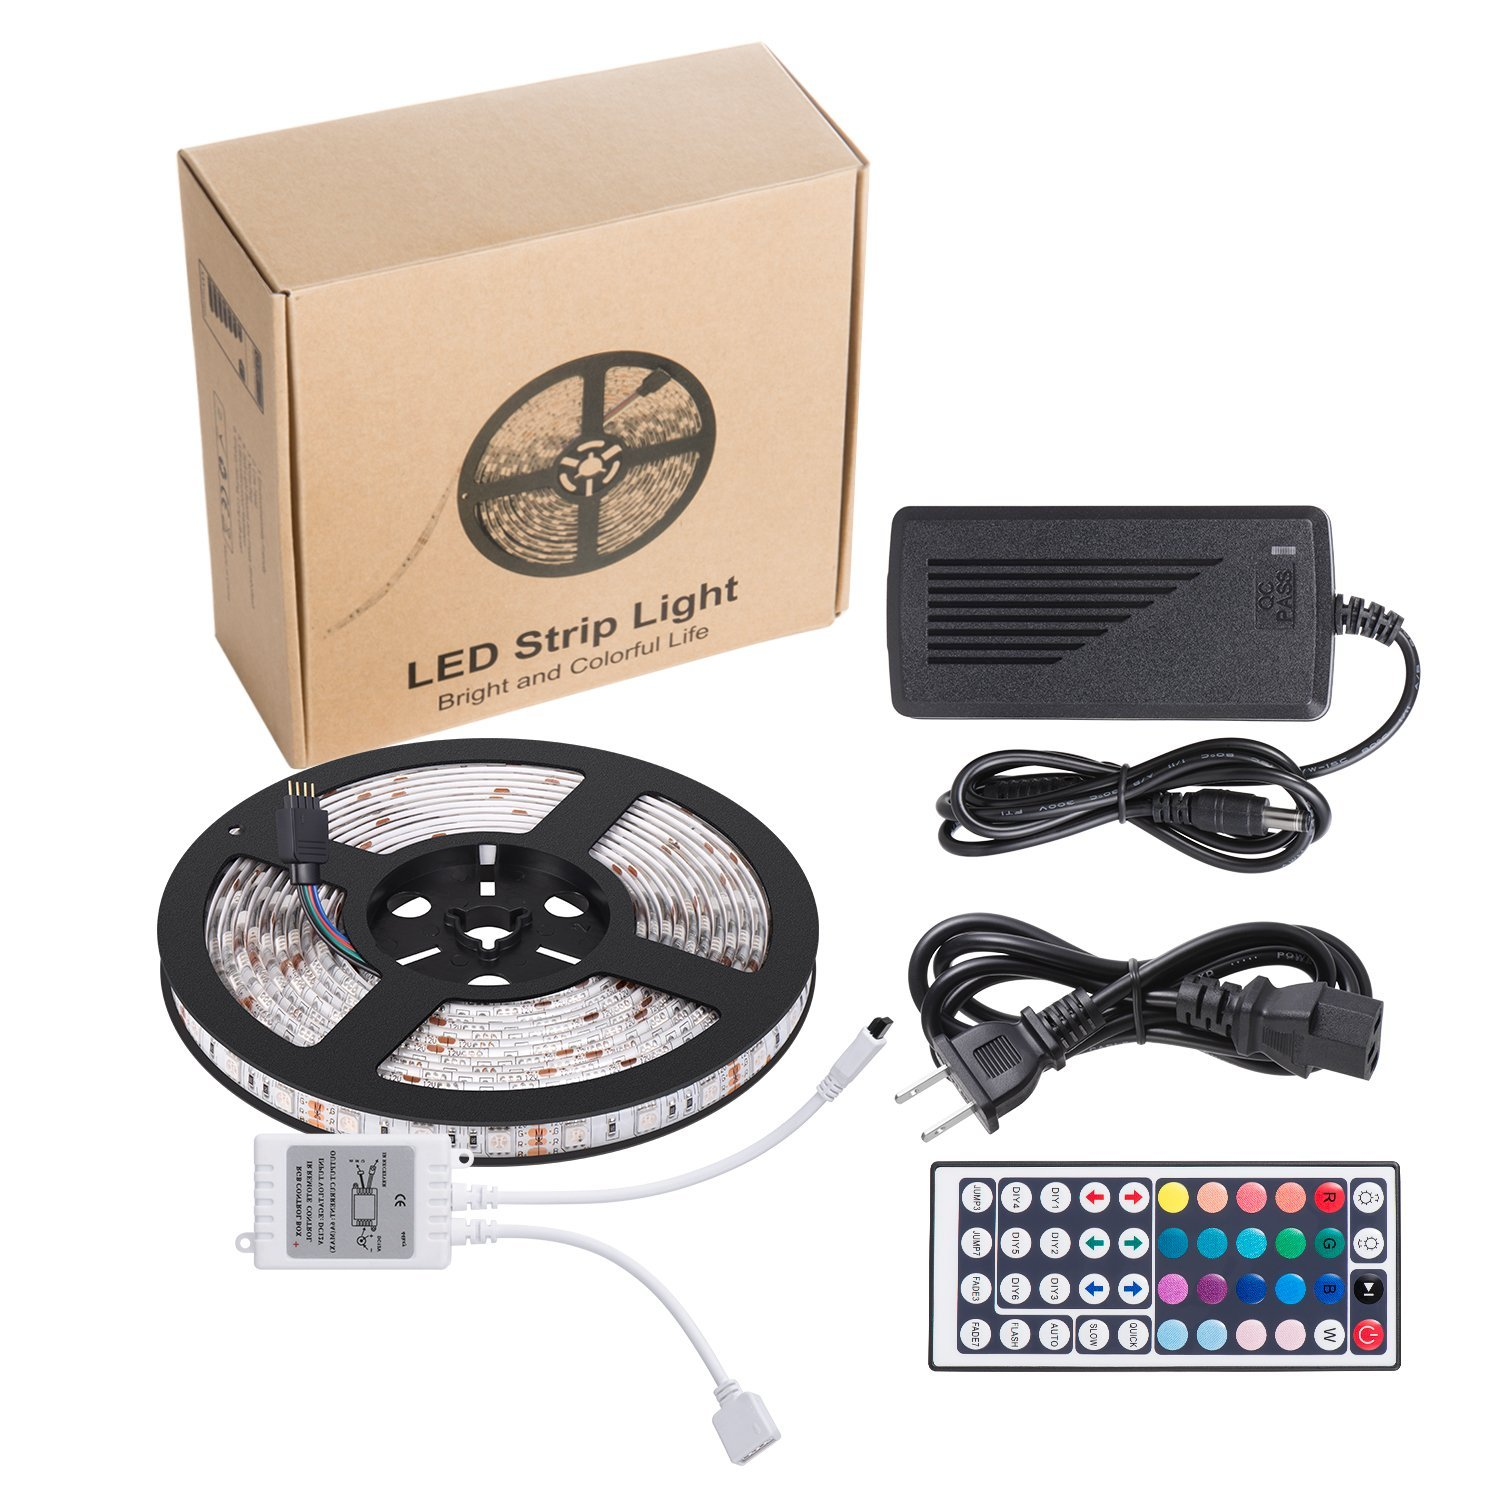 Buy 5050 LED RGB light strip online through Amazon (includes Prime)